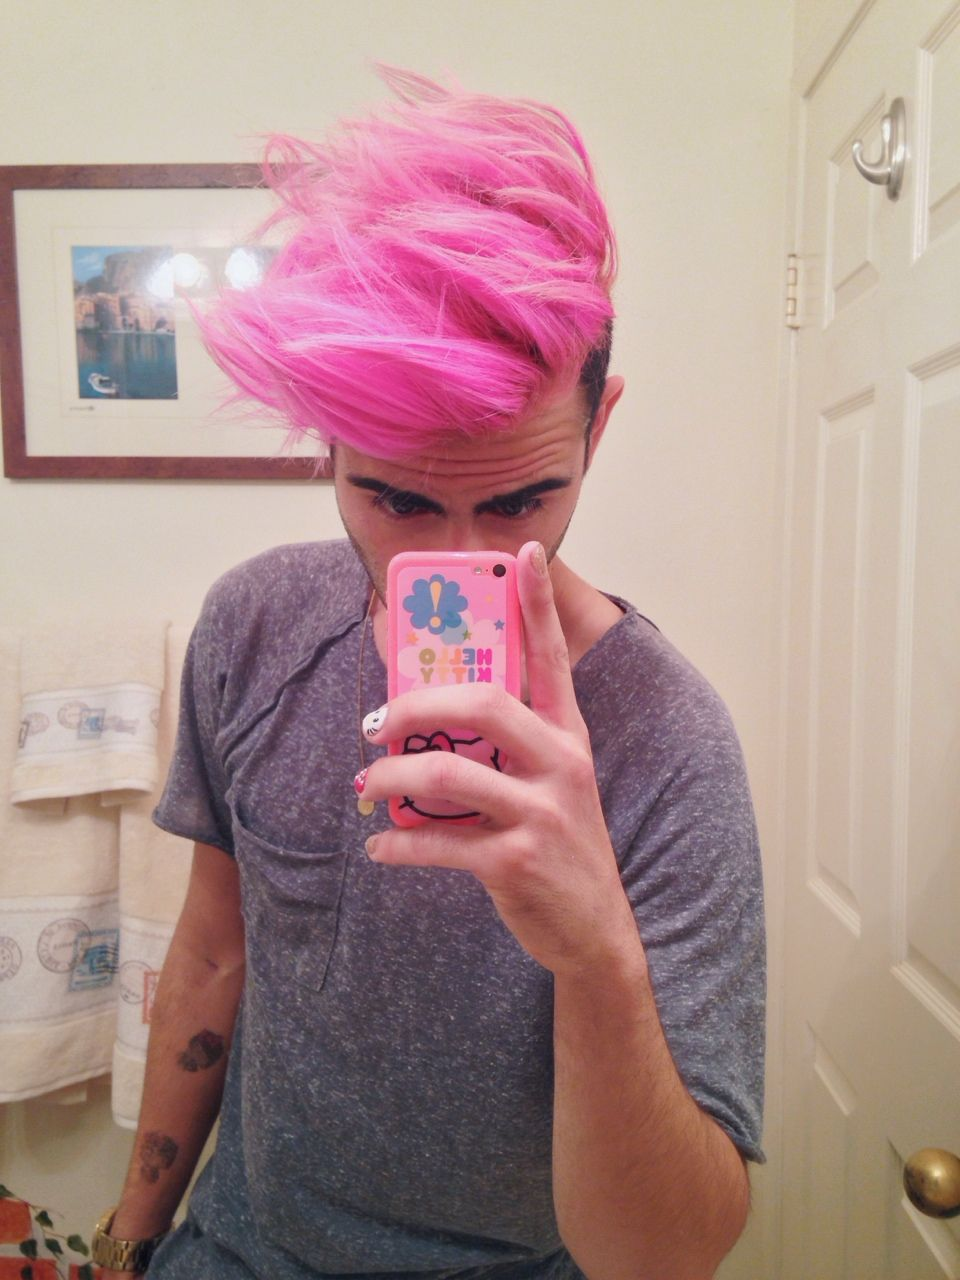 Cool boy hair dye pink hair  dyed hair  pinterest  cabelo cabelo colorido and